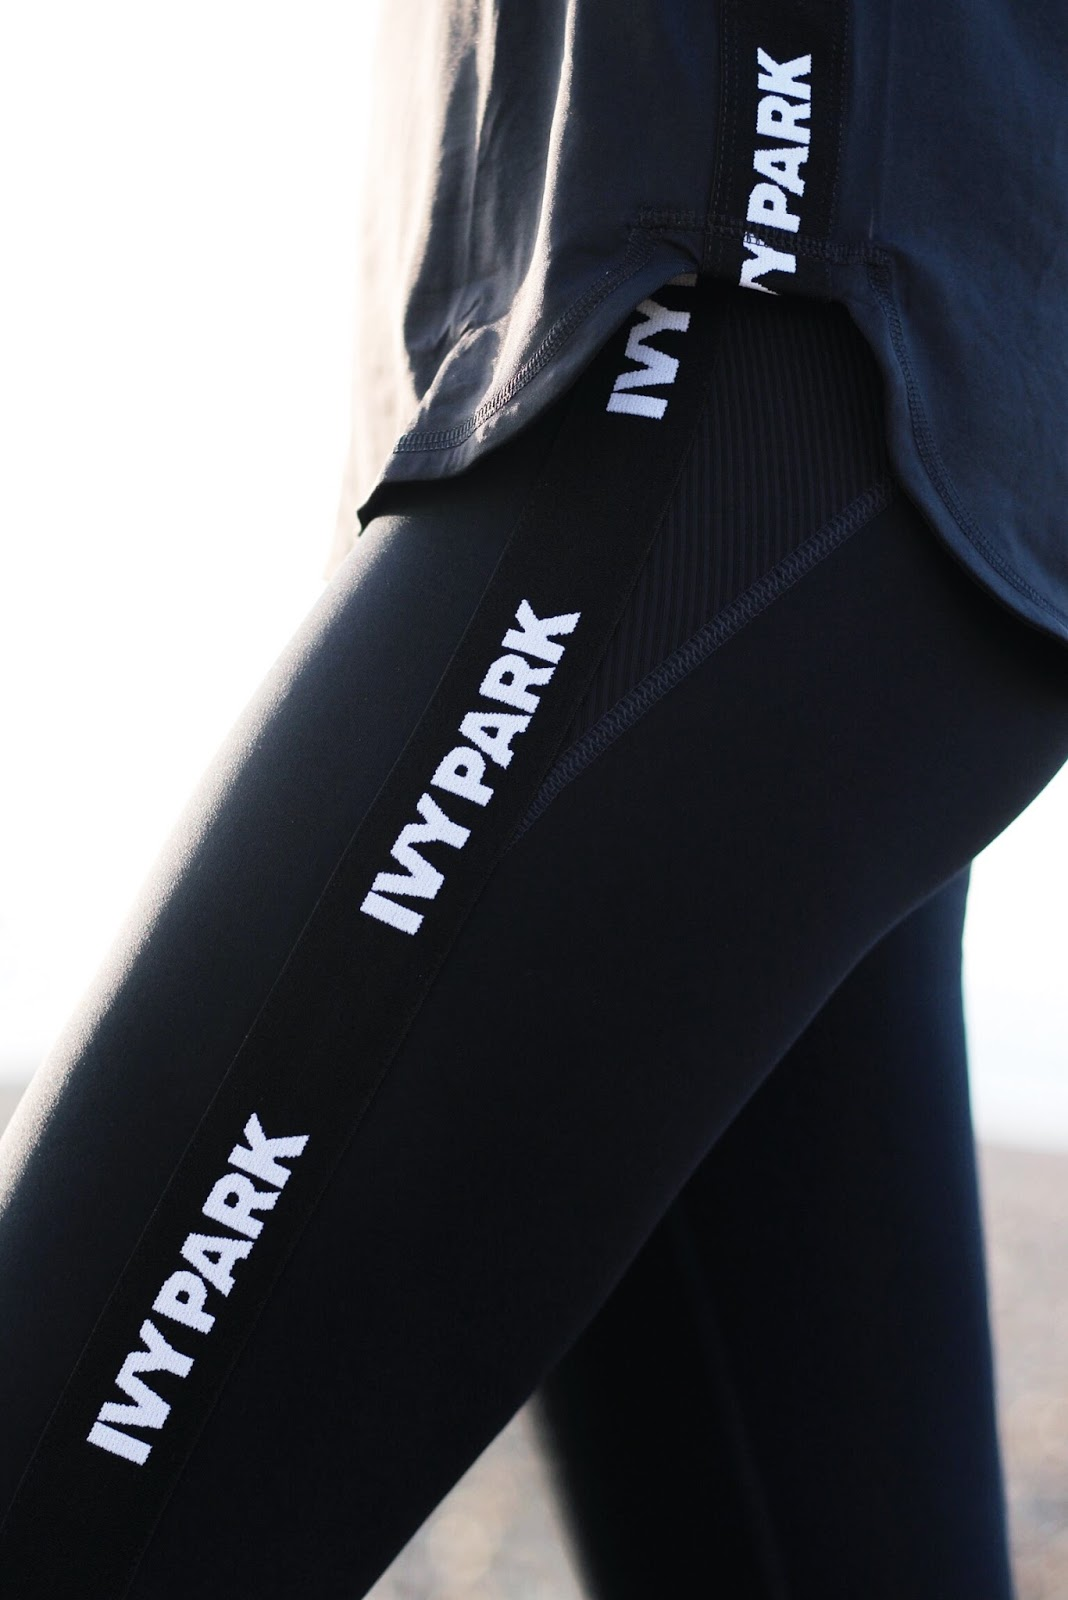 Ivy park Black and White Tape Tights